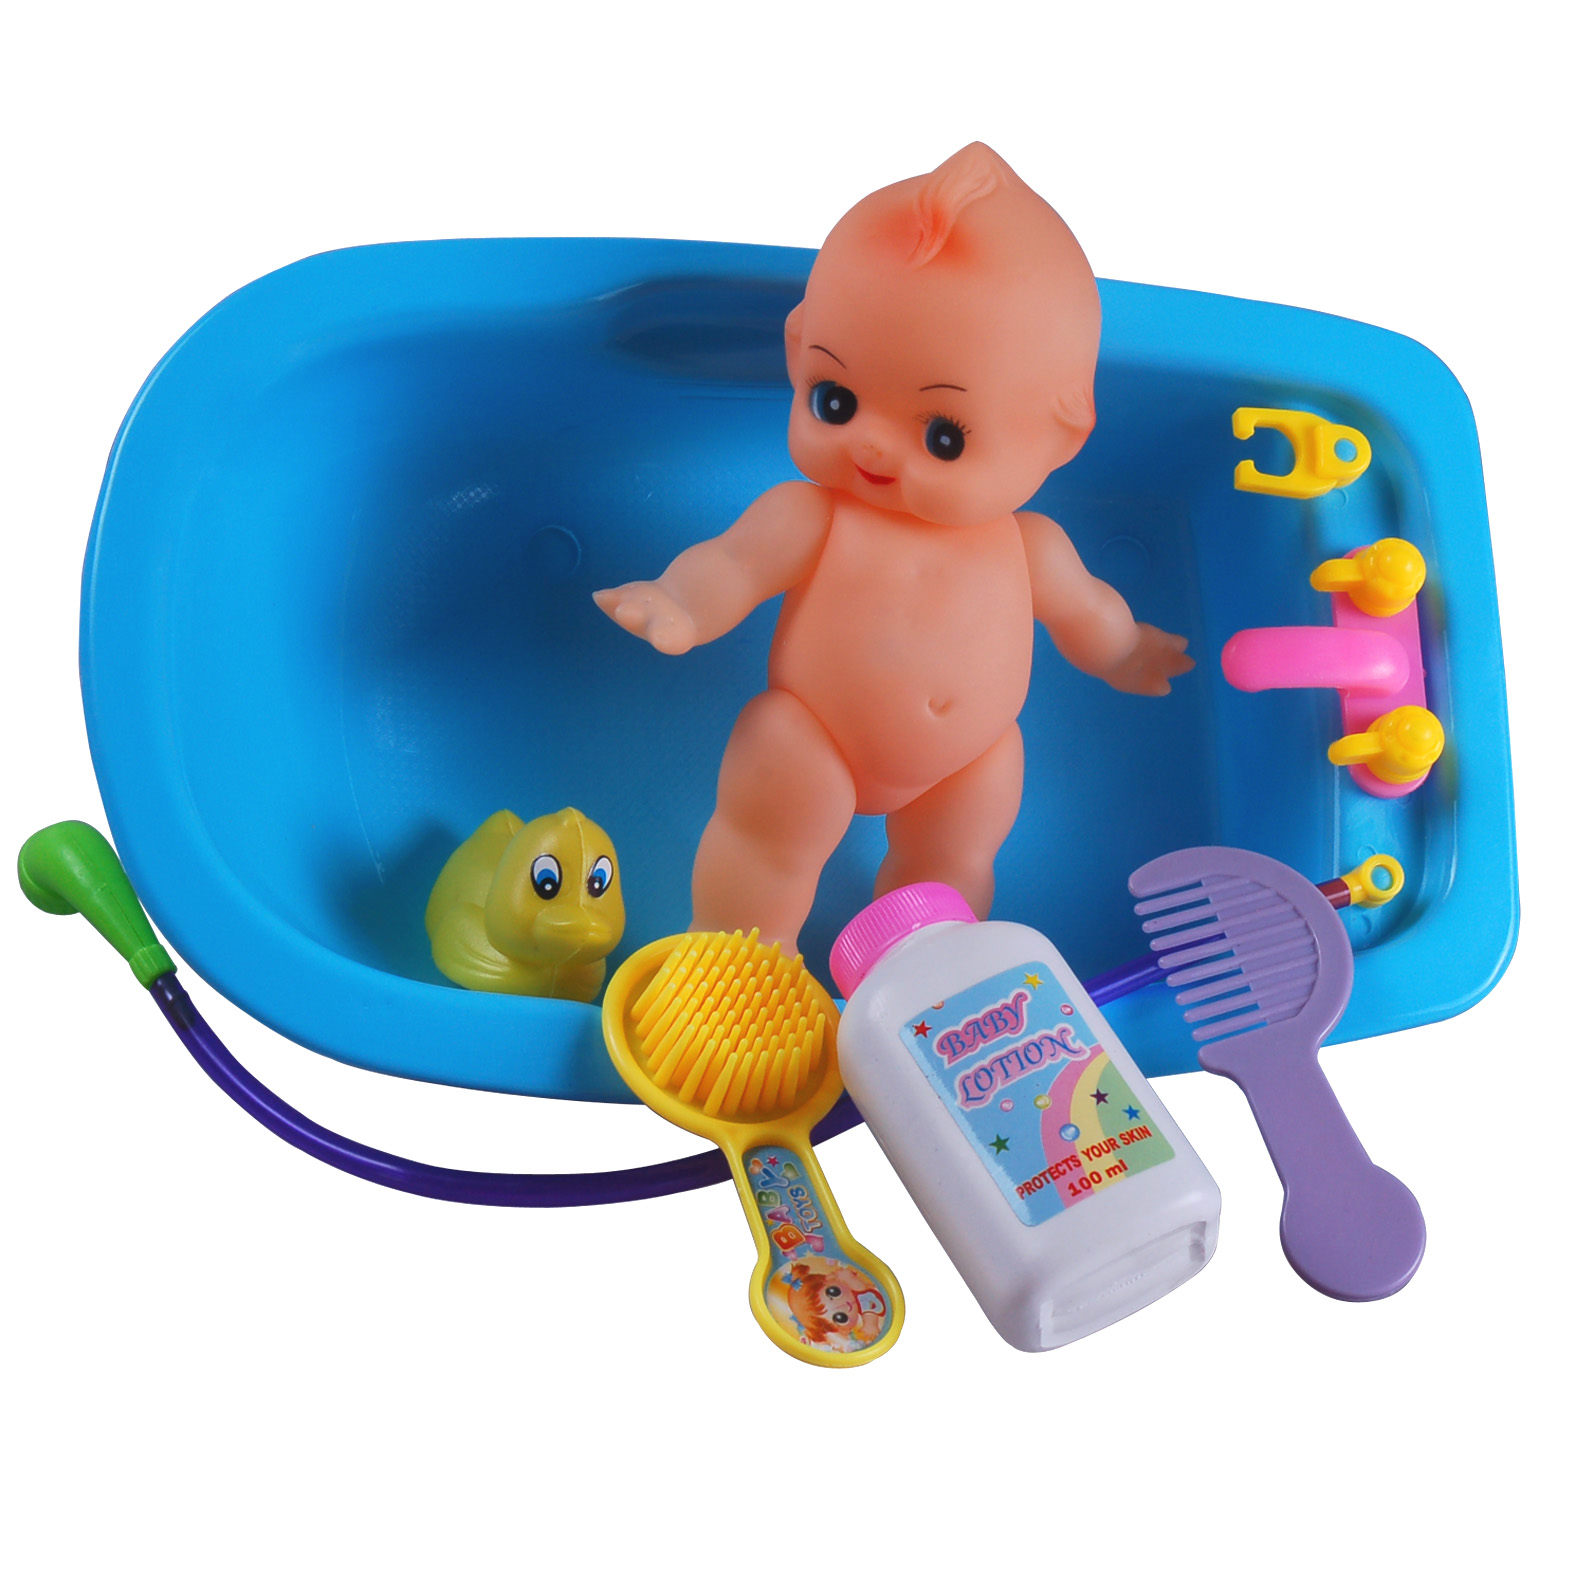 Excellent Baby Bathtub Toys Pictures Inspiration - Bathroom with ...